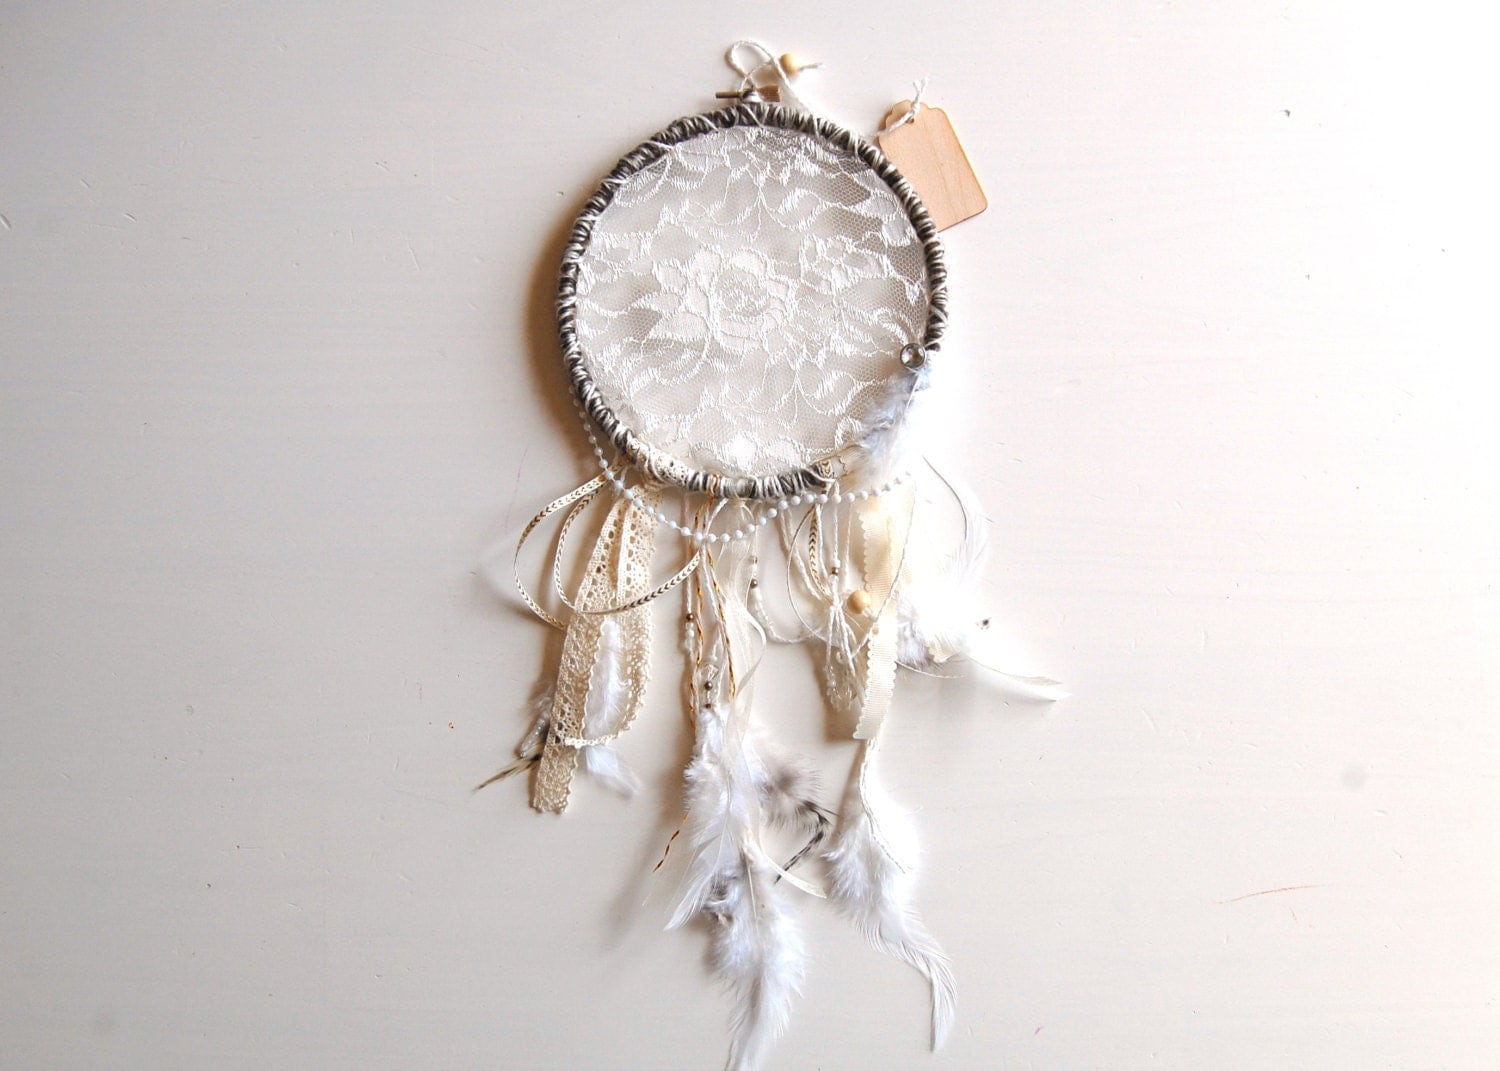 Lace dream catcher on embroidery hoop